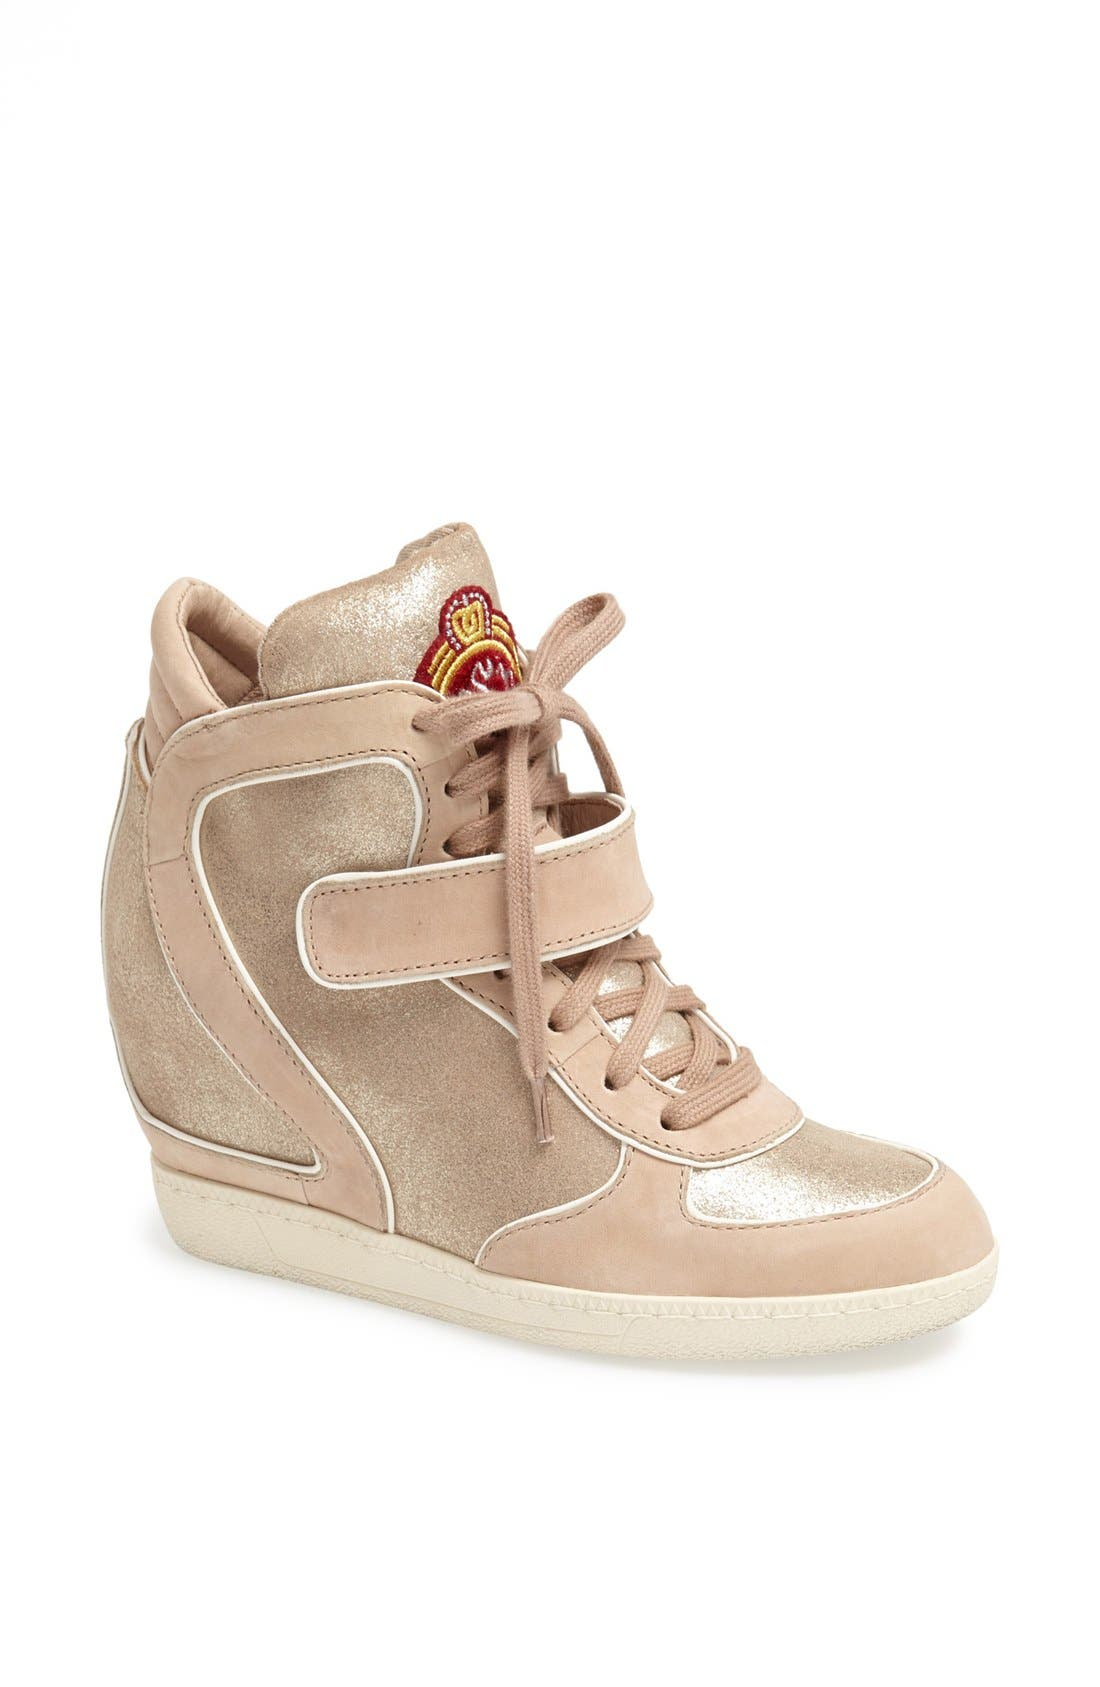 Alternate Image 1 Selected - Ash 'Brendy' Hidden Wedge Suede & Metallic Leather Sneaker